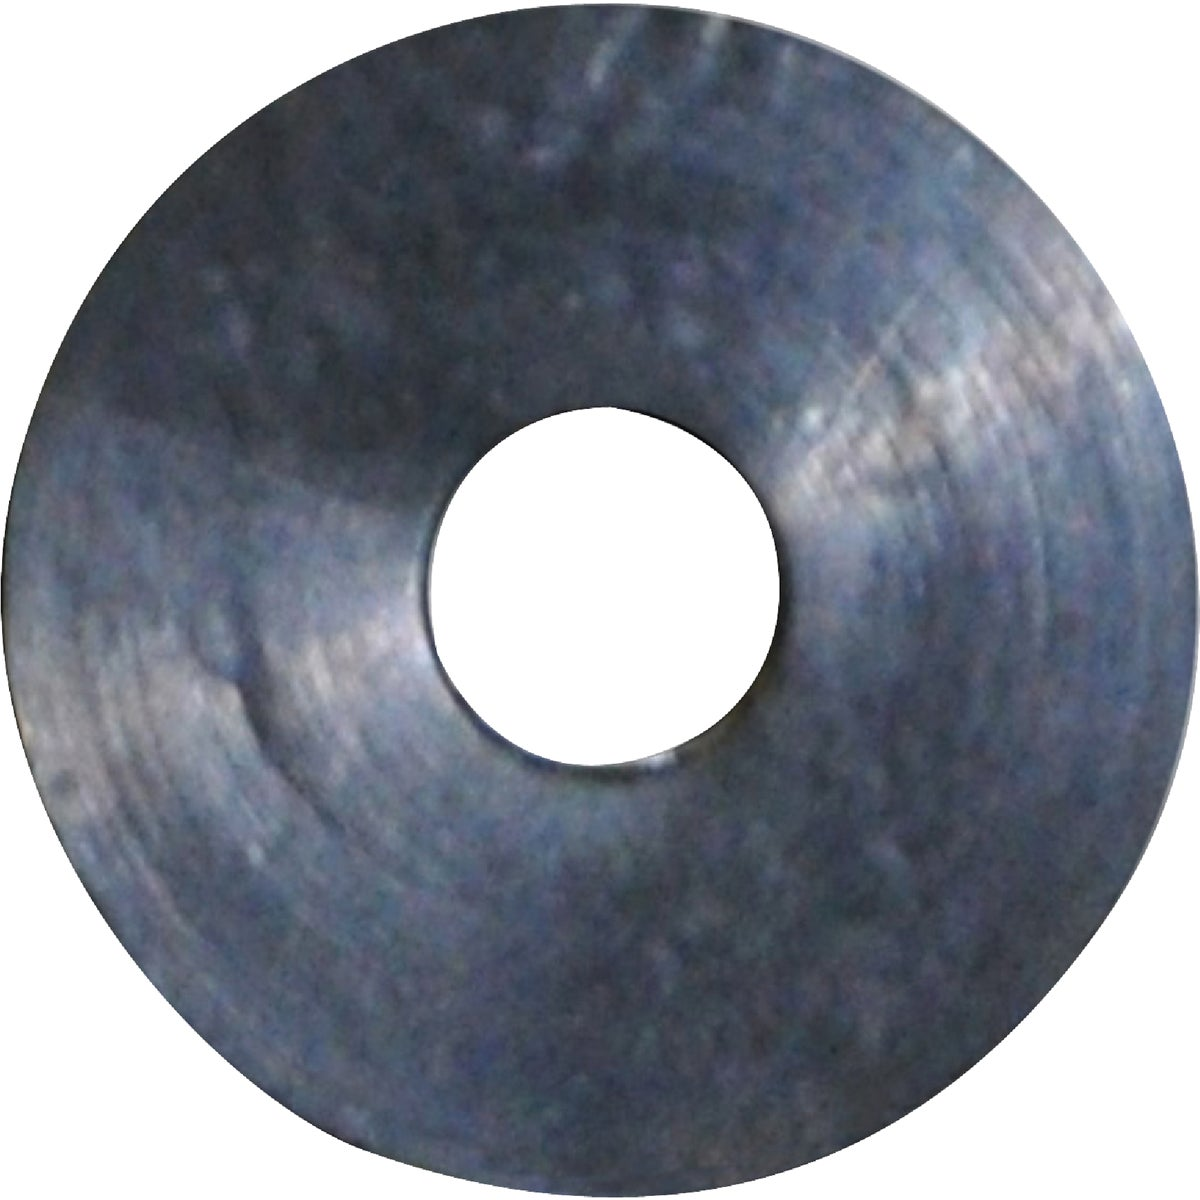 Danco 88571 Rubber Flat Washer, 9/16-Inch, 10-Pack